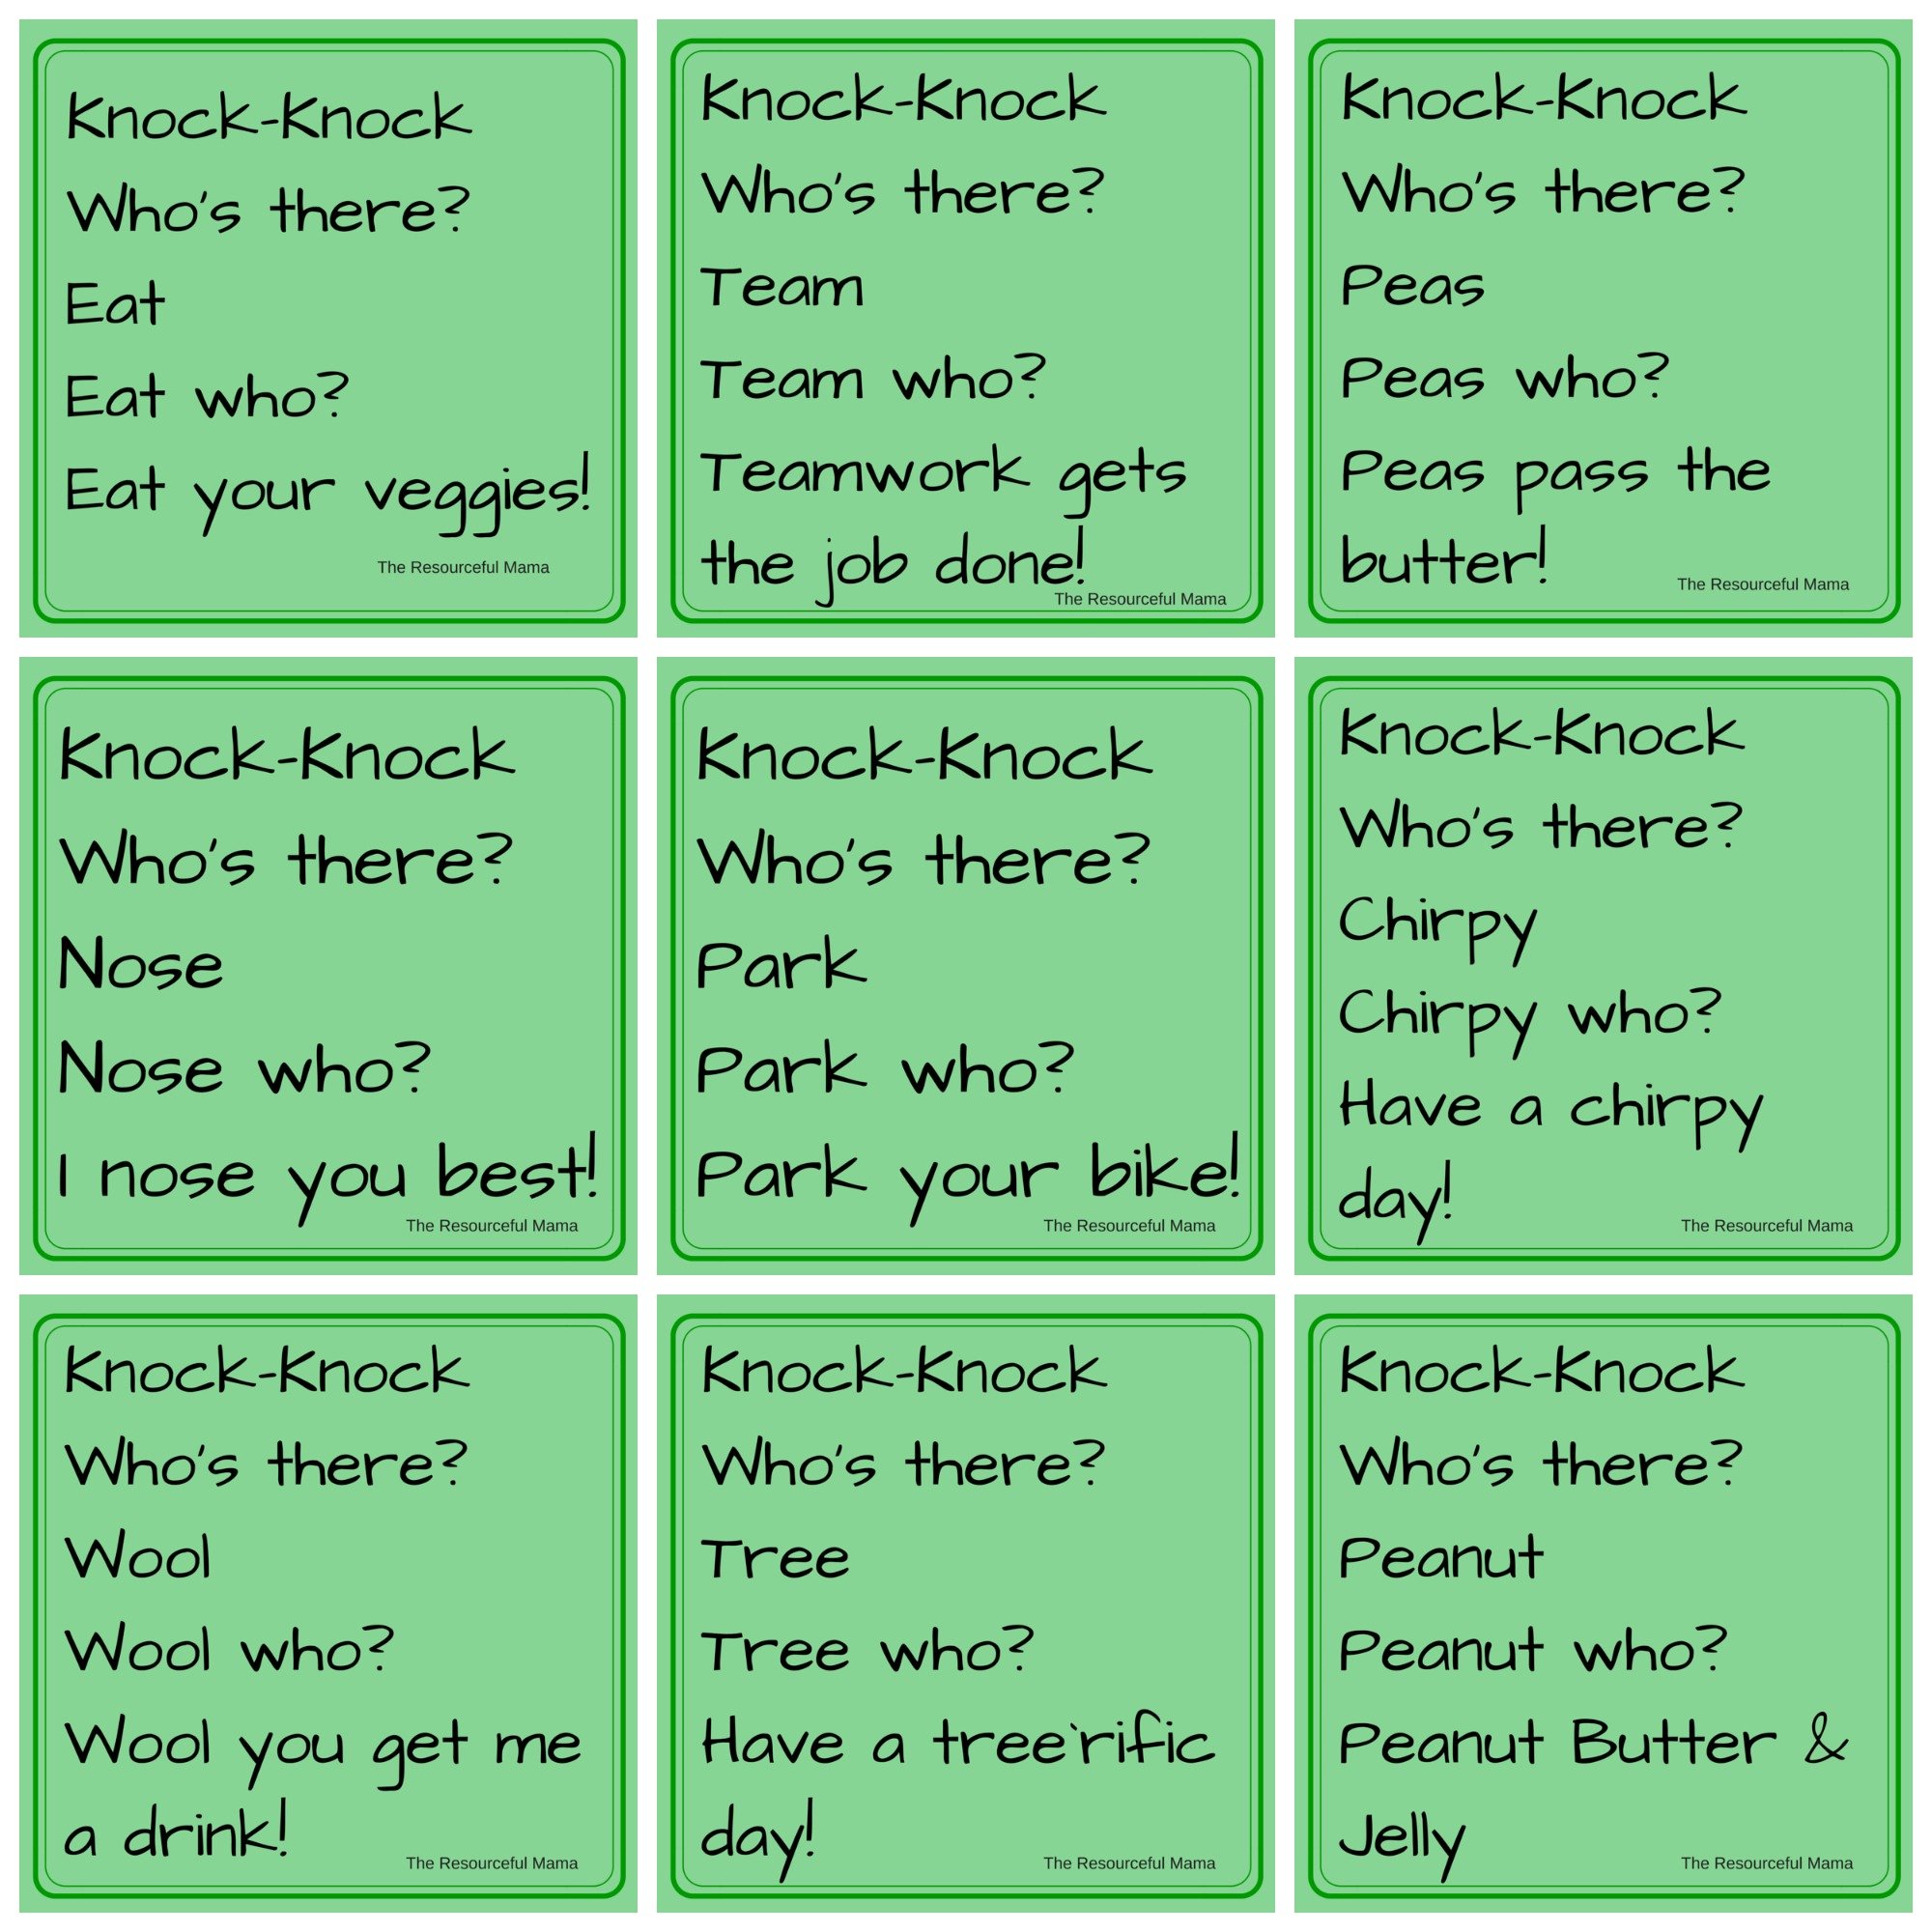 April Fool&#39;s Day <b>Knock</b>-<b>Knock Jokes</b> for <b>Kids</b> - The Resourceful Mama